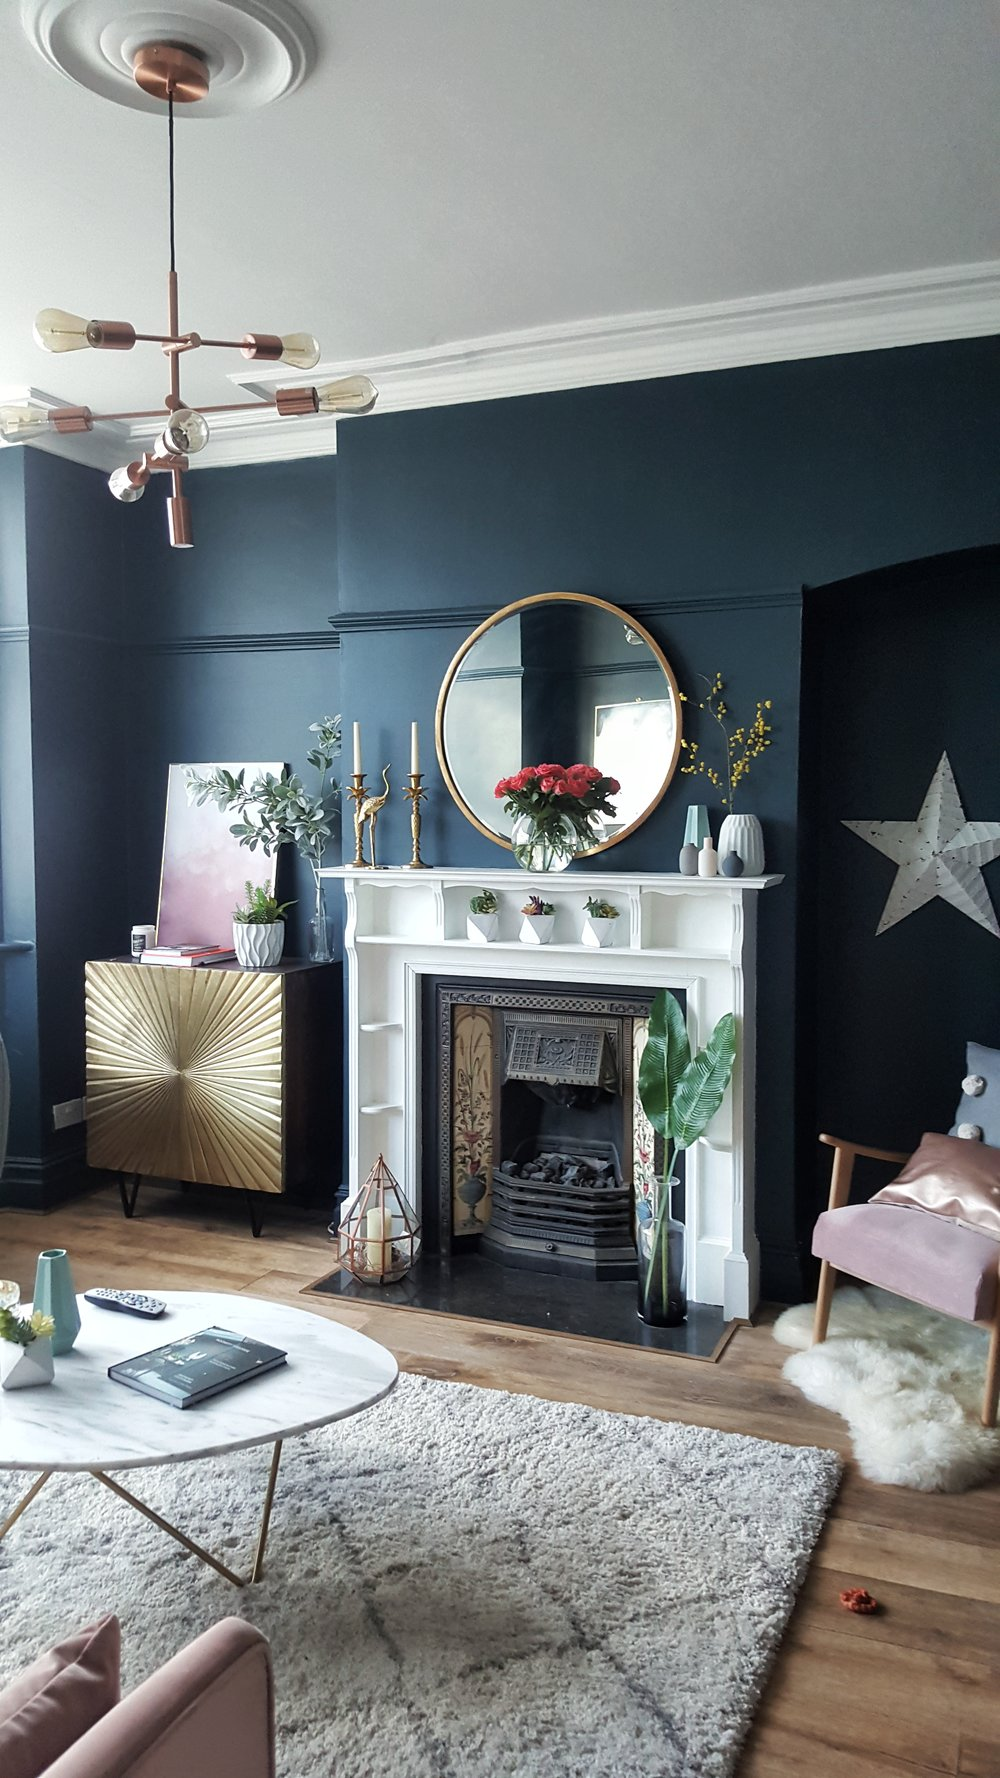 The Hague Blue walls in the beautiful Sitting Room of    @my_london_home   look fabulous with the gold and pink touches, dark blue and gold what a combo!